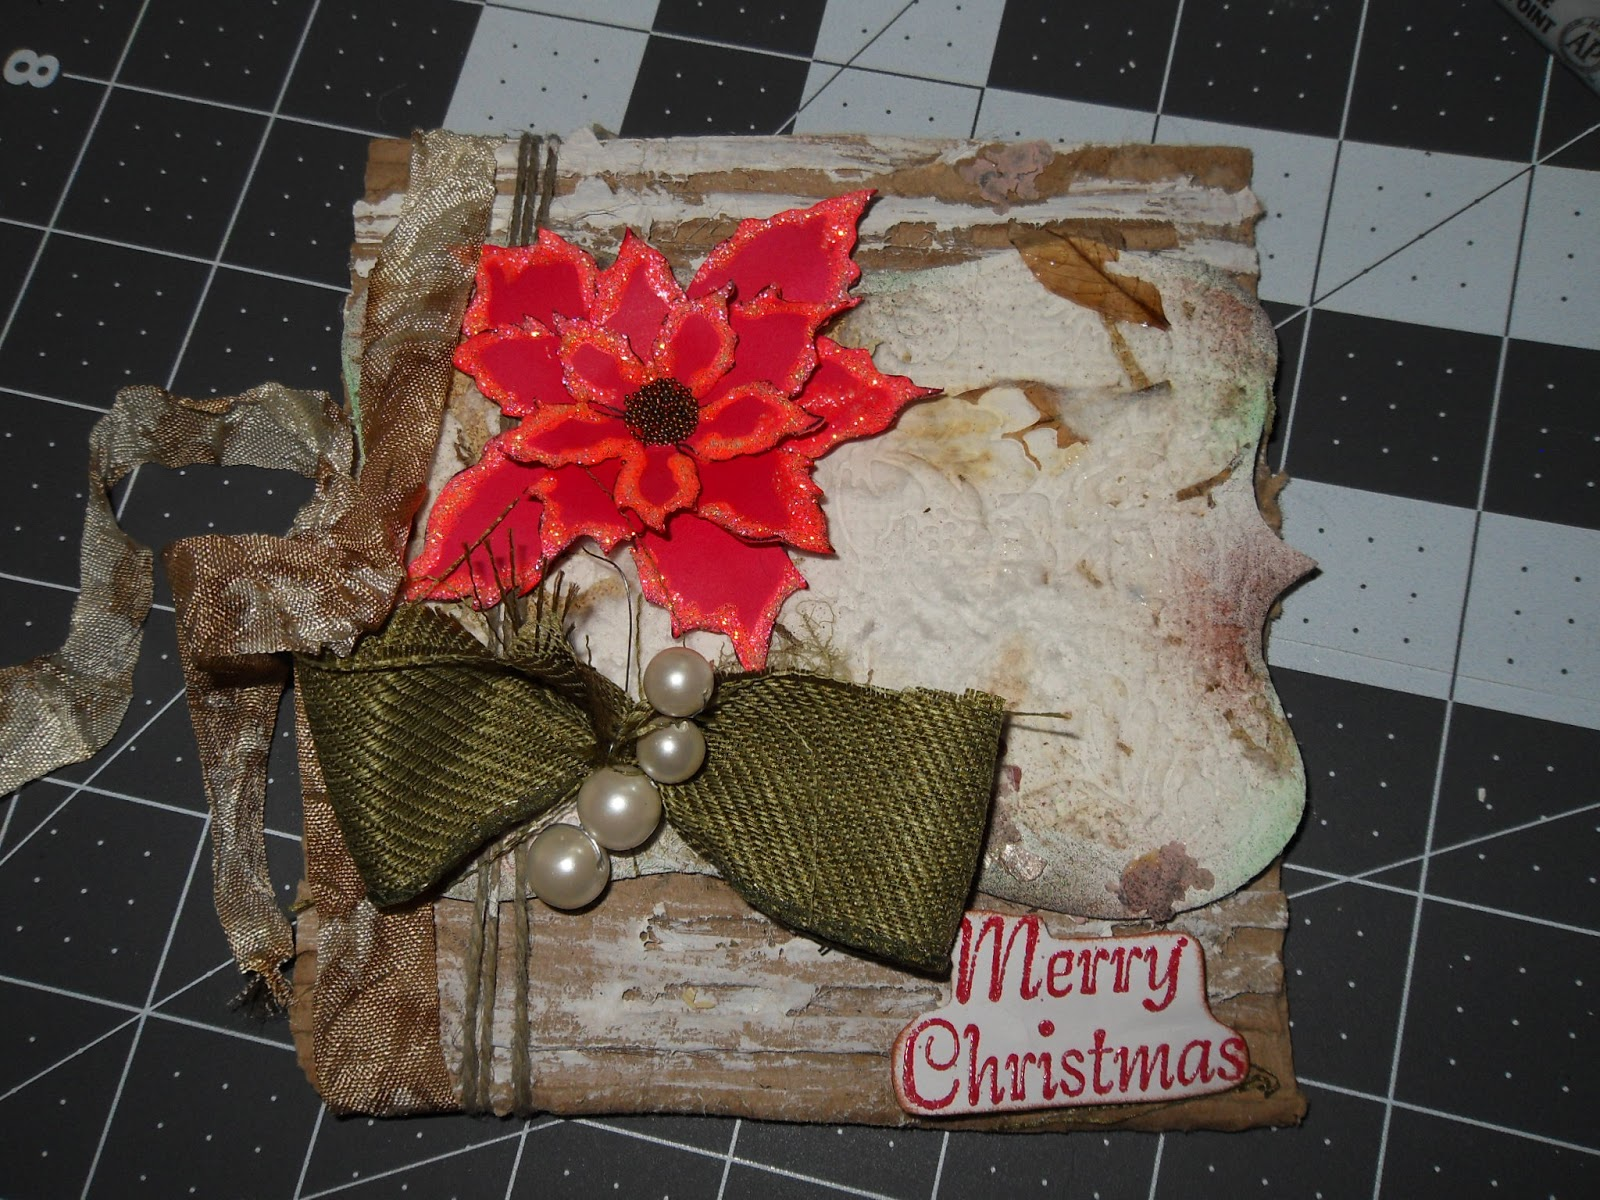 Christmas card by peggy oliver craftwell blog - Hemp rope craft ideas an authentic rustic feel ...